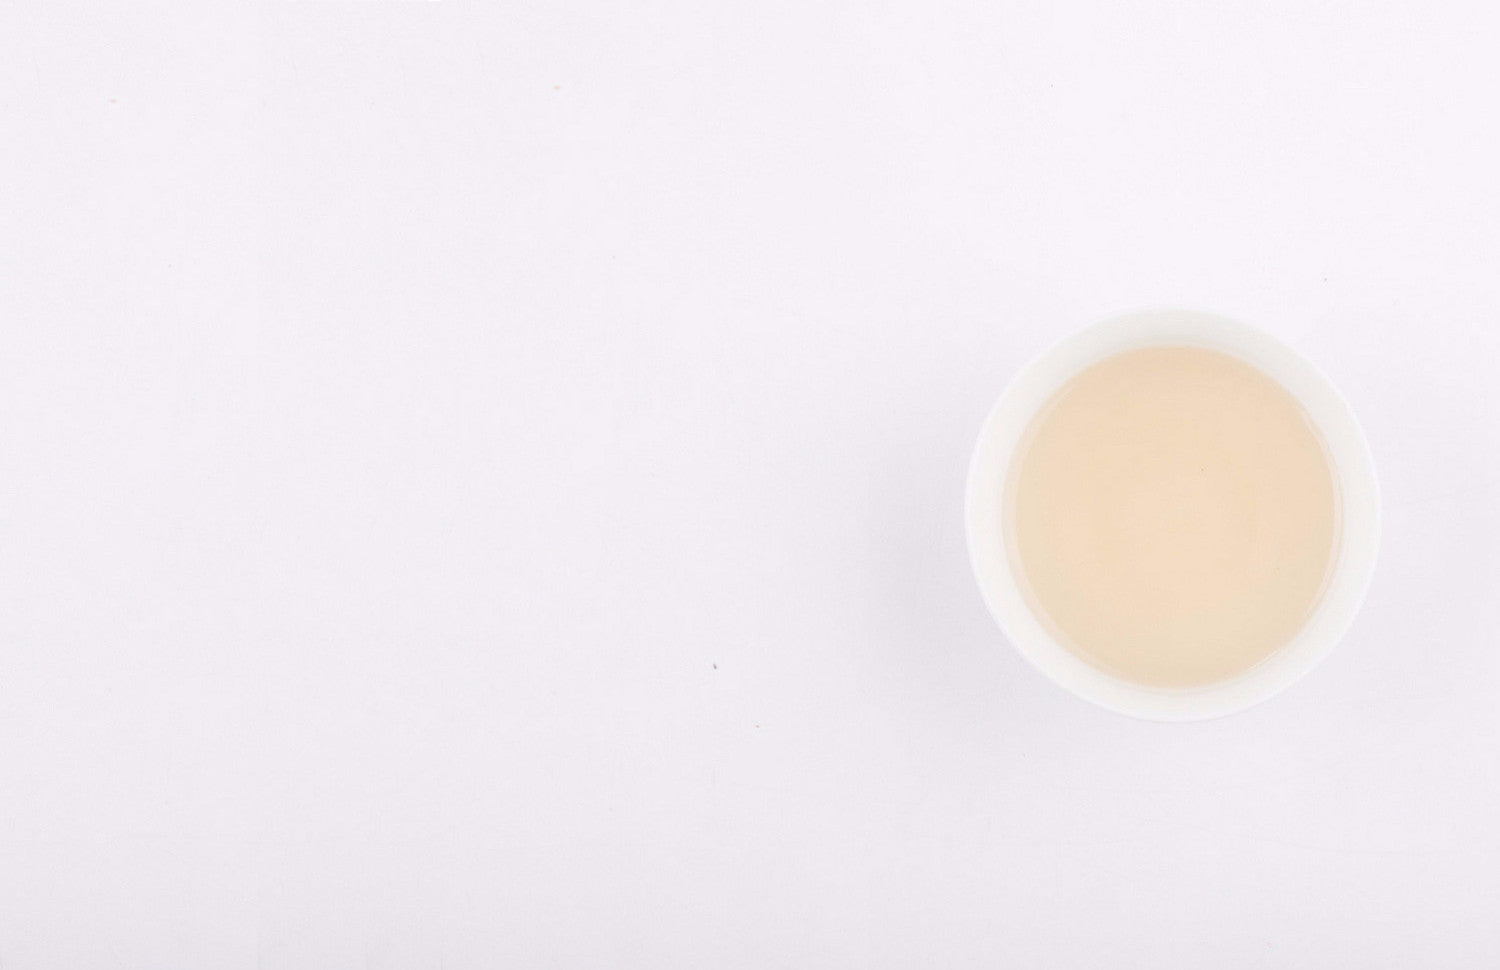 borntea tea stands out a cup of tea